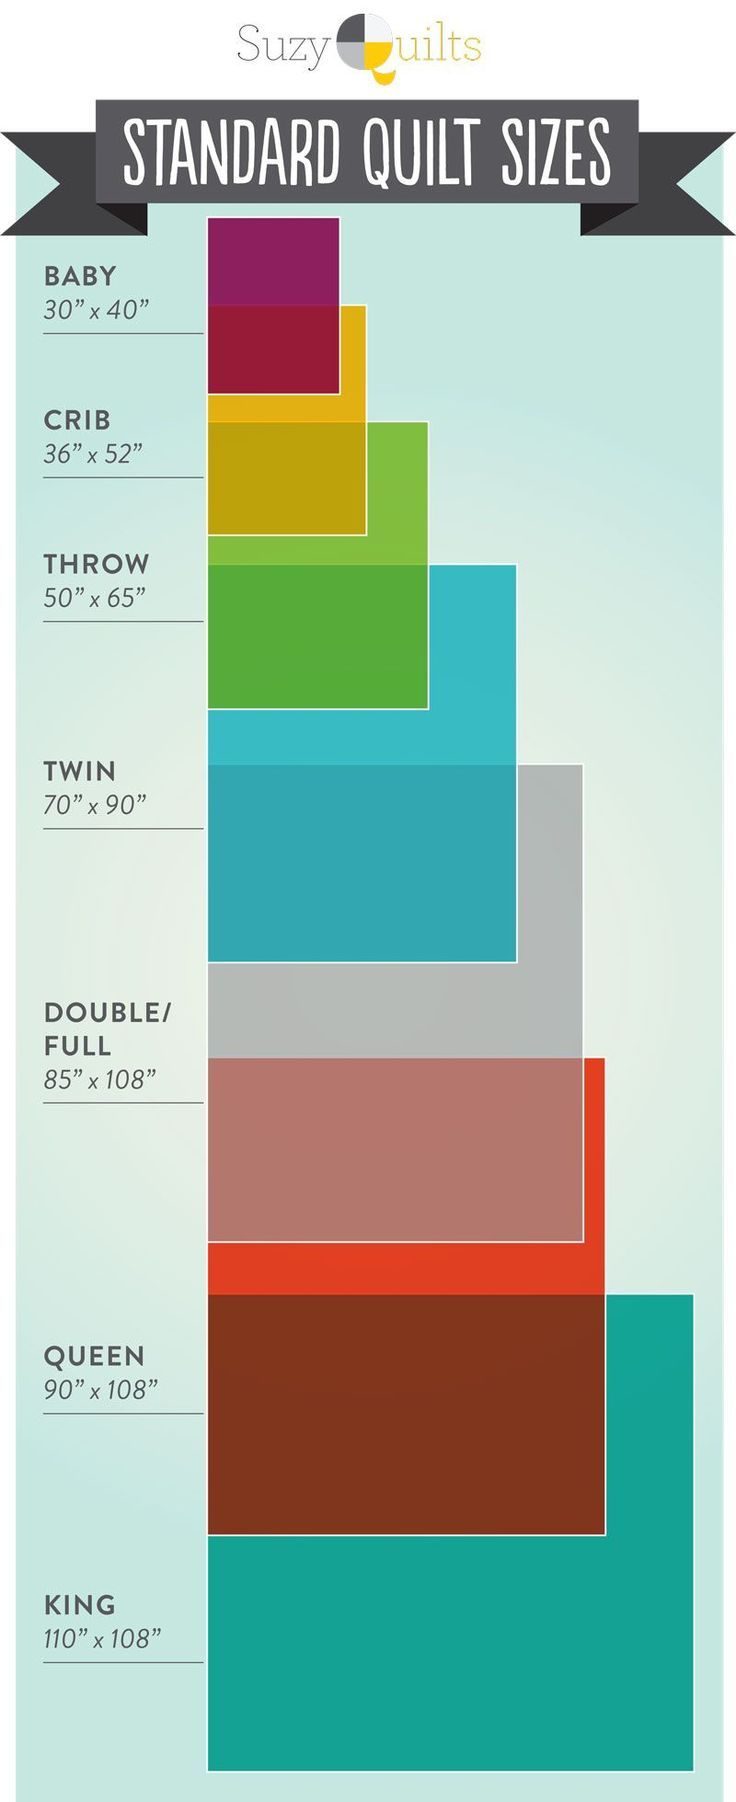 Find All Of The Standard Quilt Sizes In This One Hand Infographic Quilt Sizes Quilt Size Chart Quilt Patterns